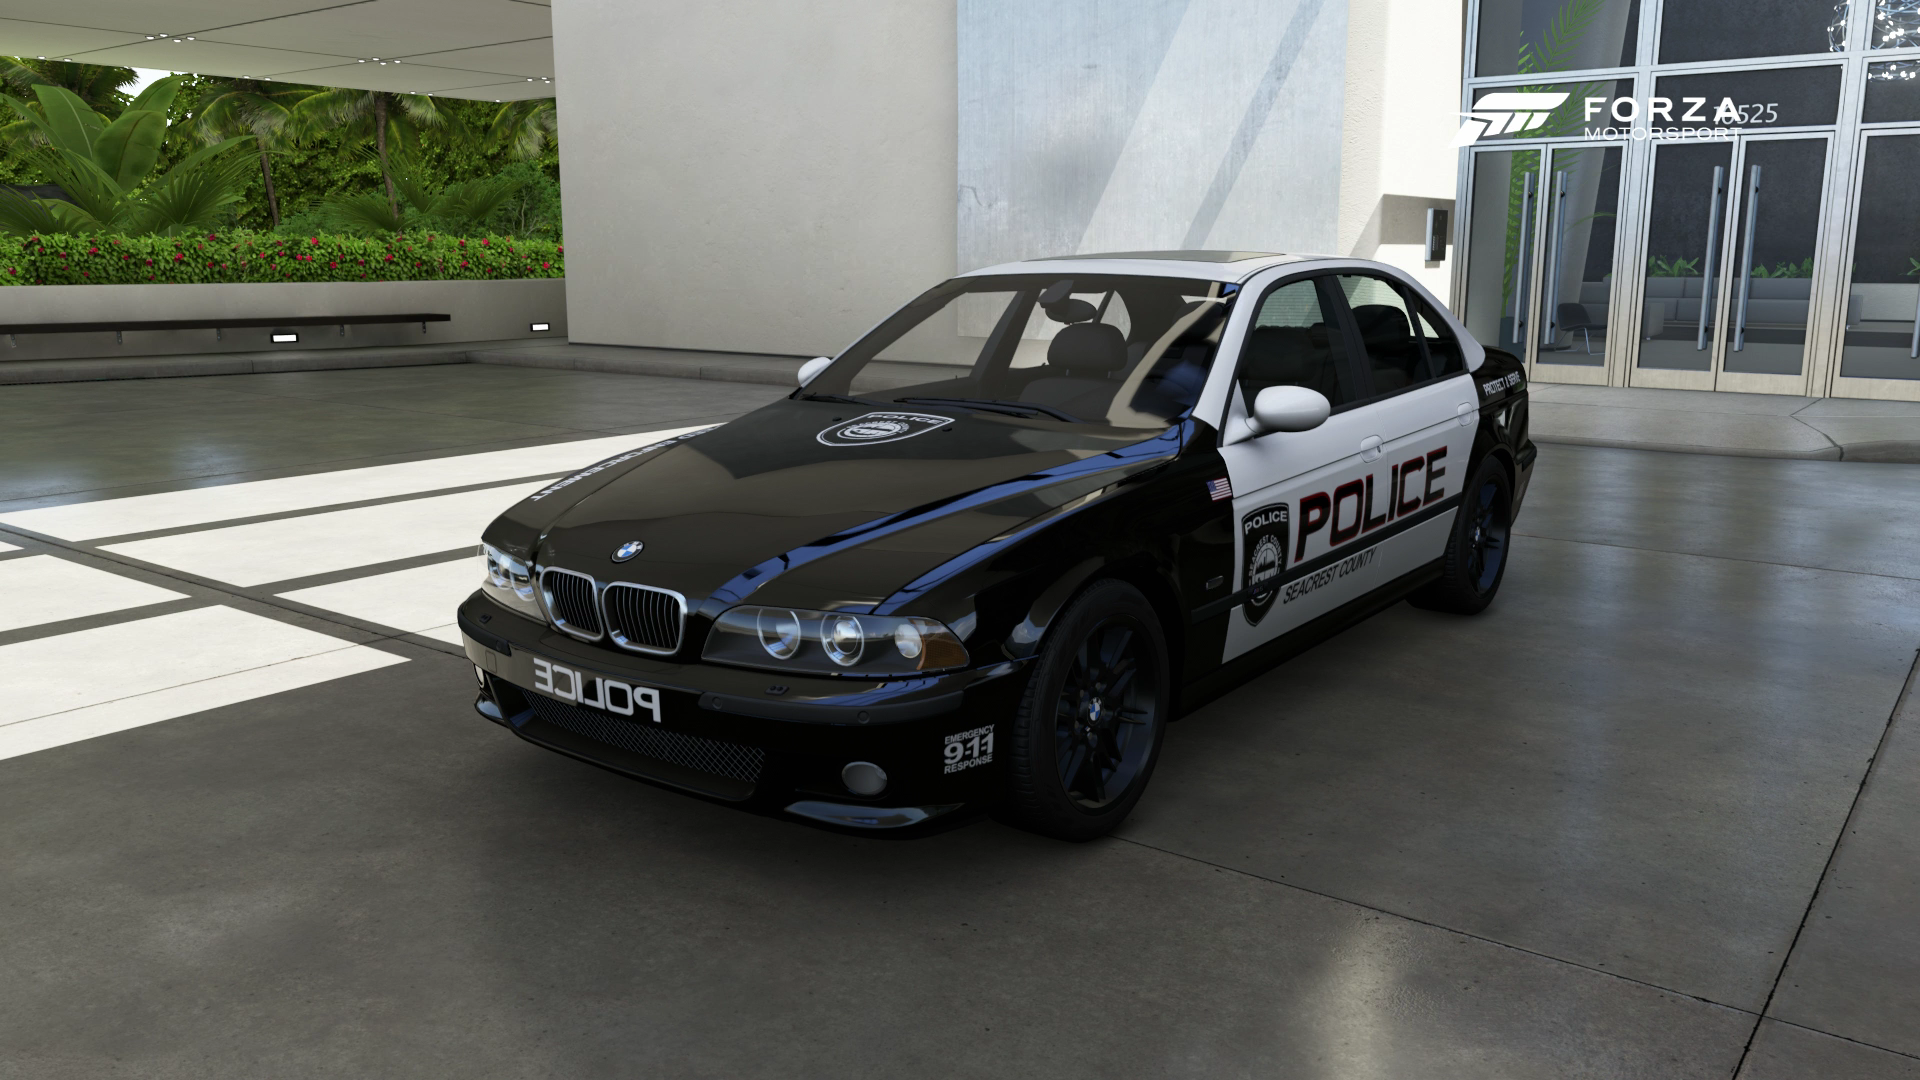 Srt Hellcat >> [SCPD POLICE CARS] xboxgamer969's Designs - Paint Booth ...